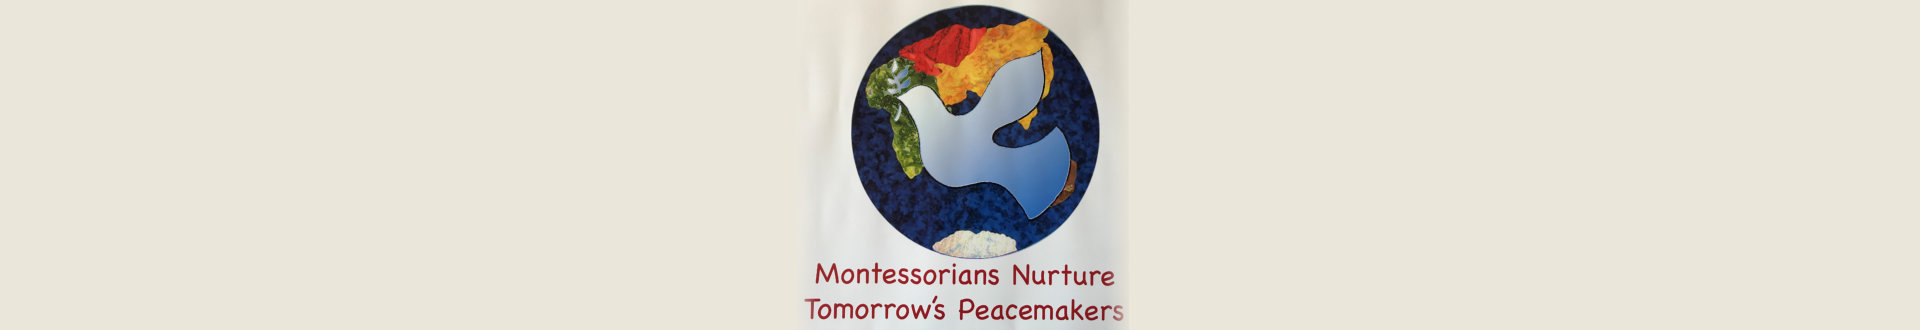 Montessorians Nurture Tomorrow's Peacemakers